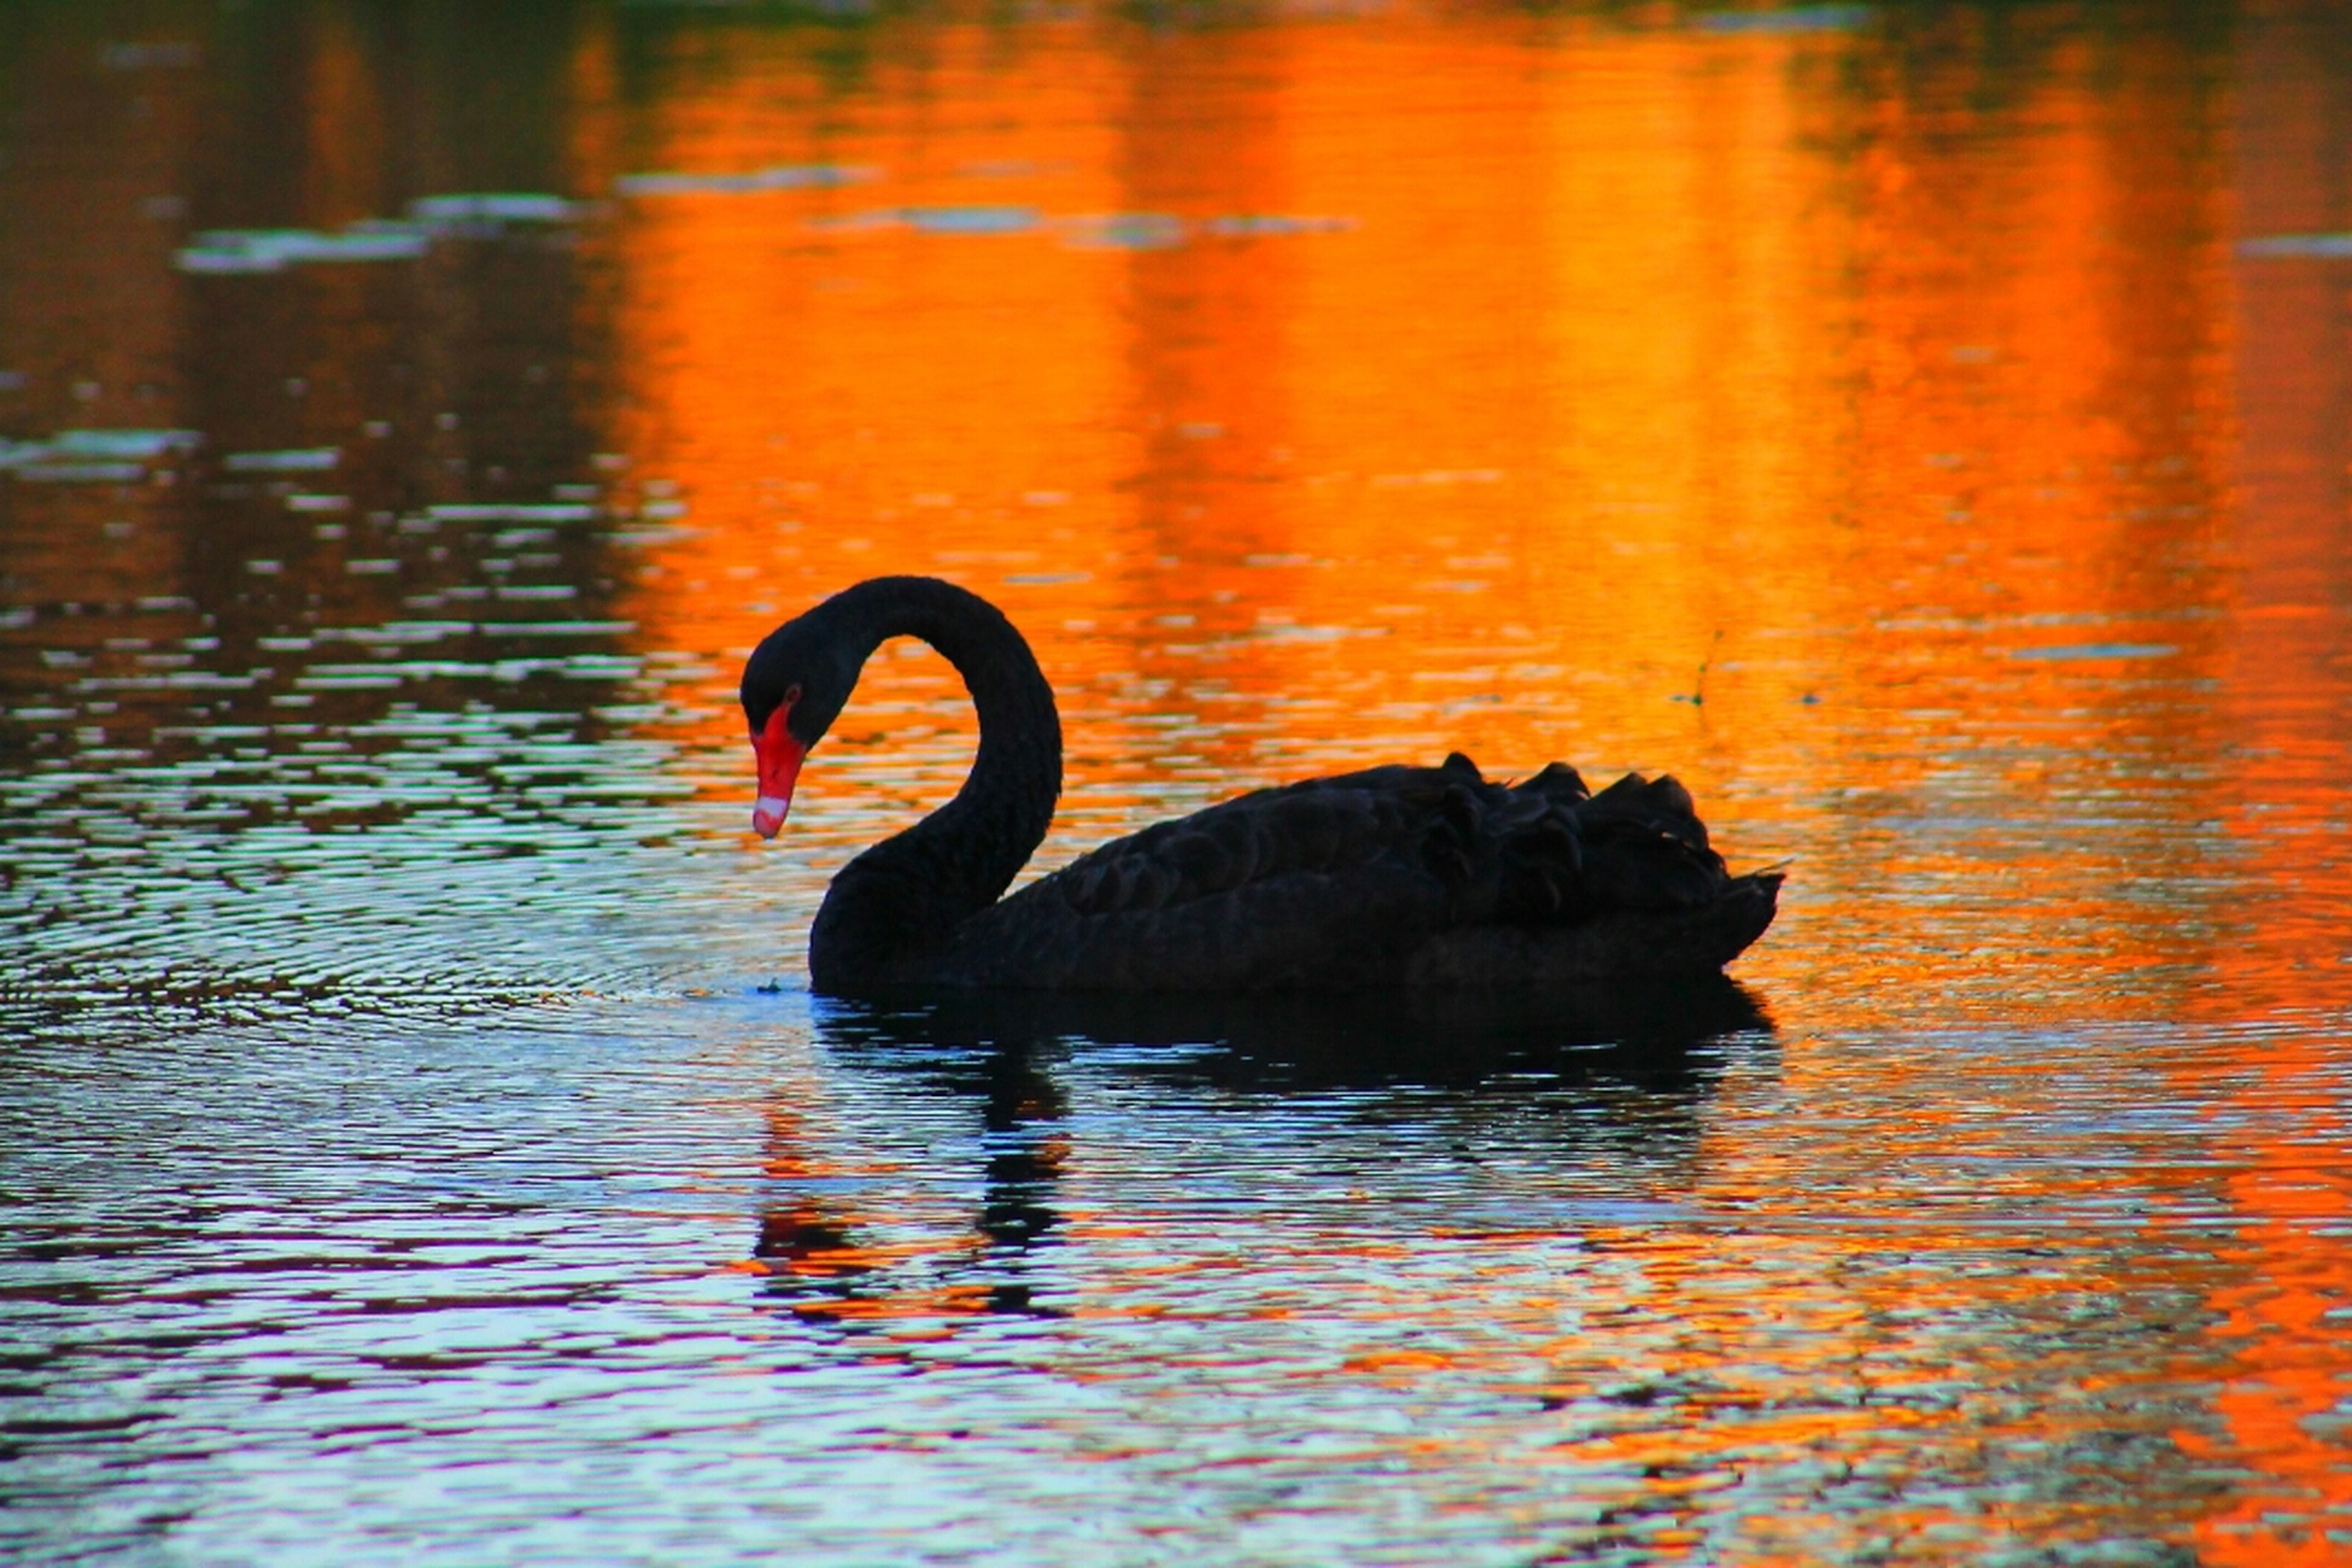 water, animal themes, one animal, wildlife, waterfront, bird, reflection, animals in the wild, lake, swimming, rippled, orange color, swan, sunset, water bird, no people, nature, zoology, outdoors, two animals